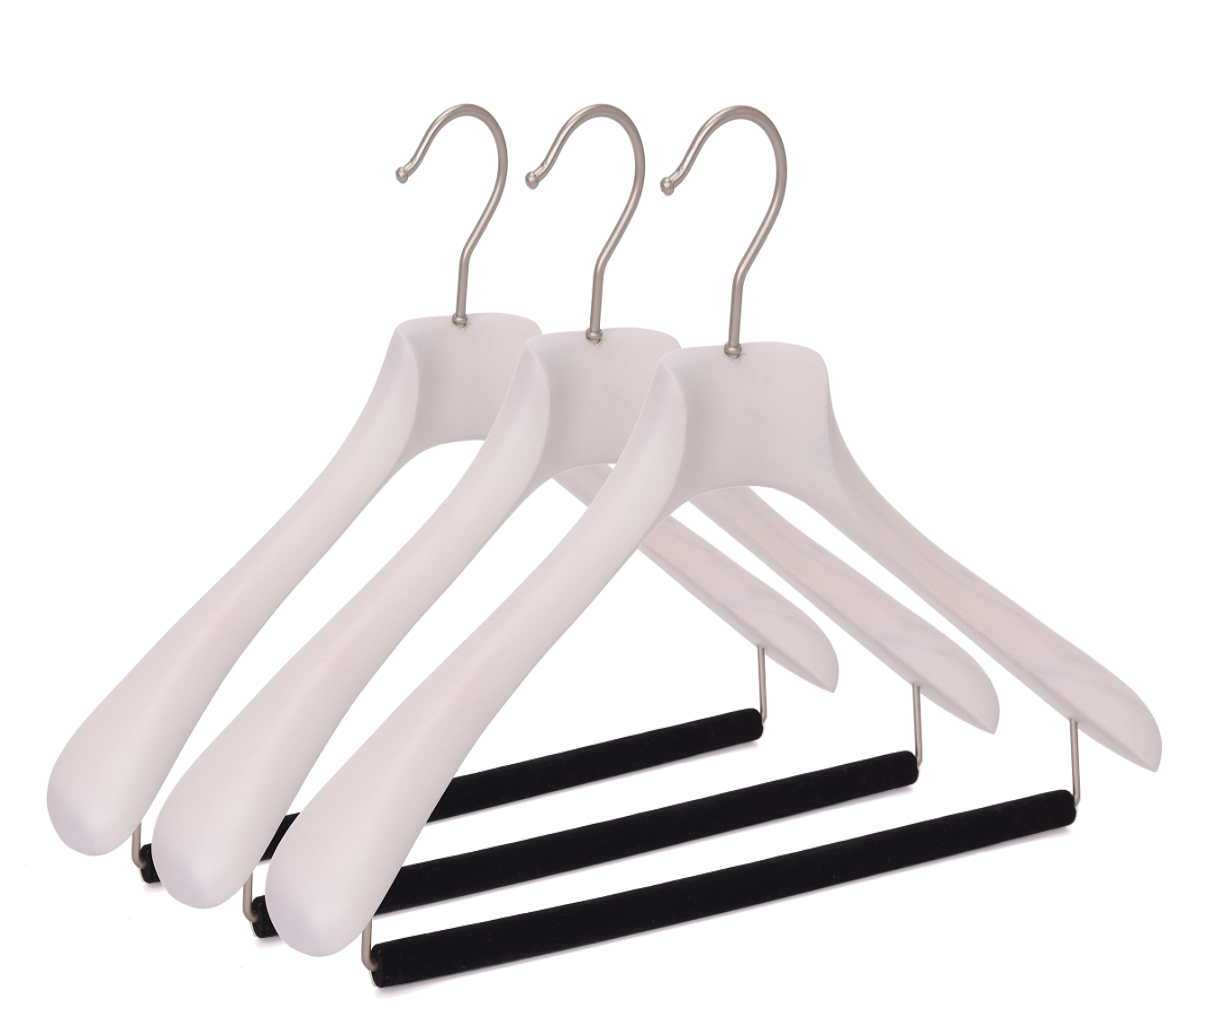 Quality Luxury Curved Wooden Suit Hangers  For Coats And Pants With Velvet Bar Matte White Wash Finish